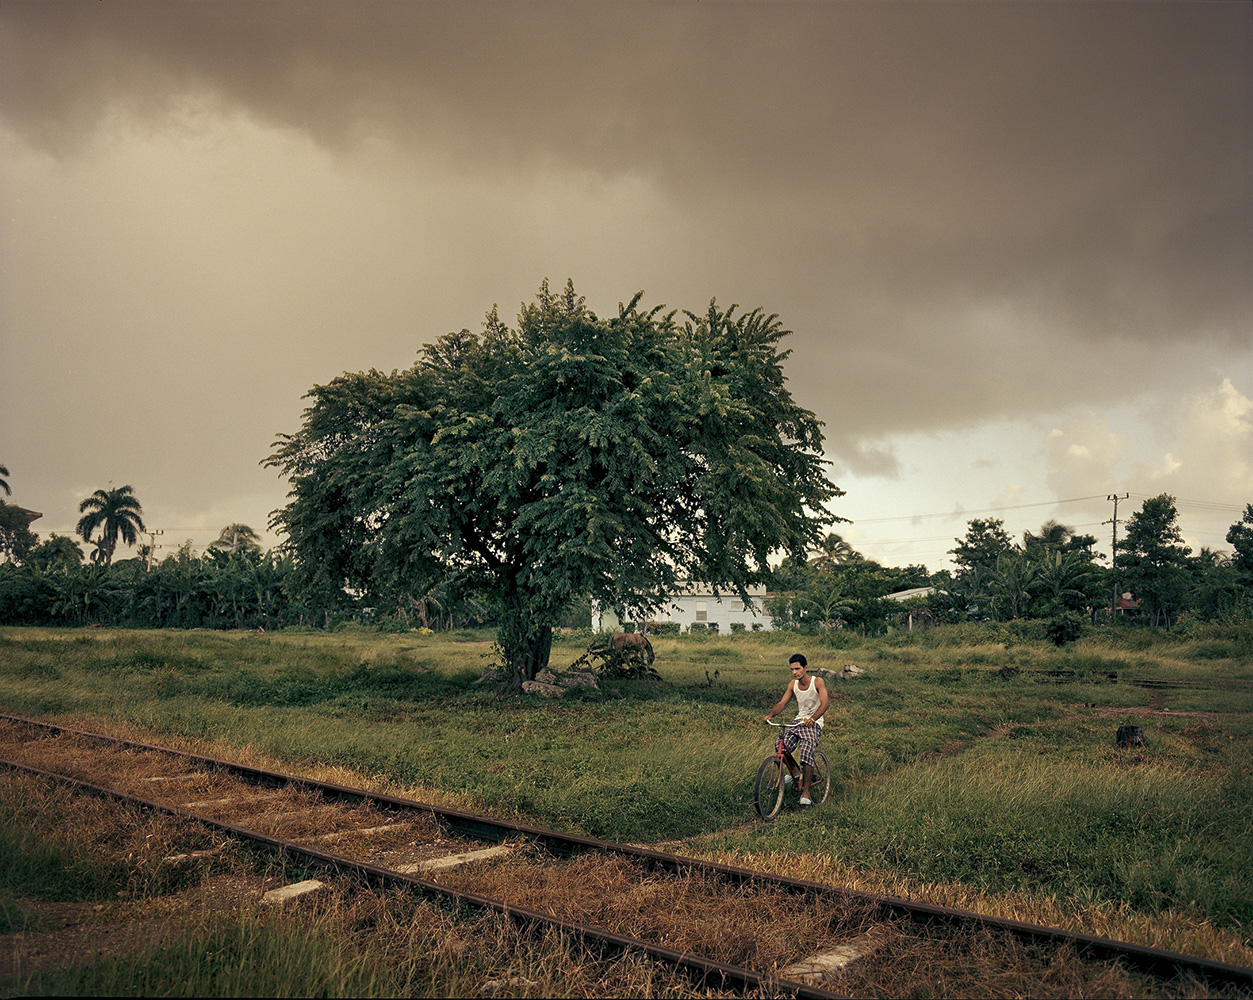 A woman crosses over the railroad in the town Manati.